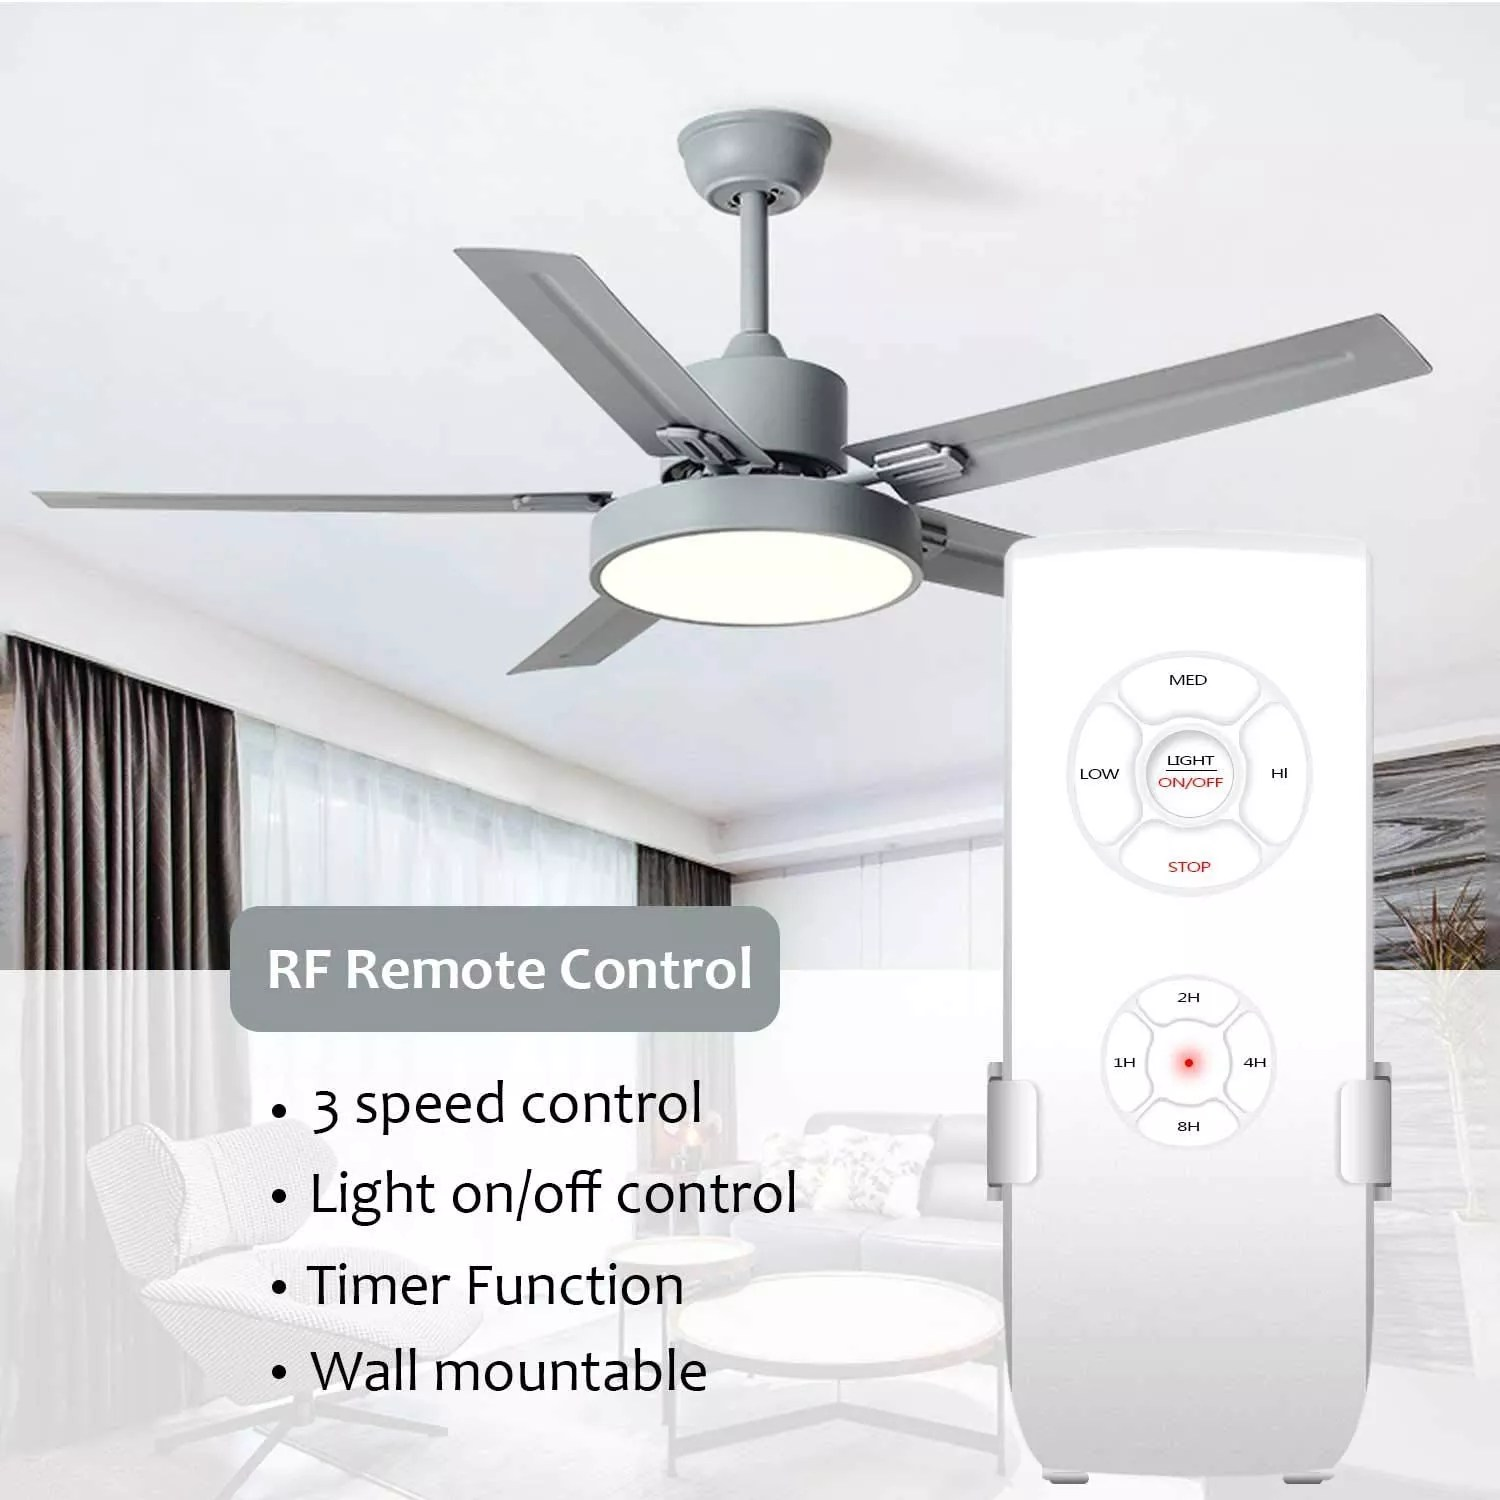 wifi smart ceiling fan light controller kit rf app remote control for ceiling fan compatible with alexa and google home assist buy remote control